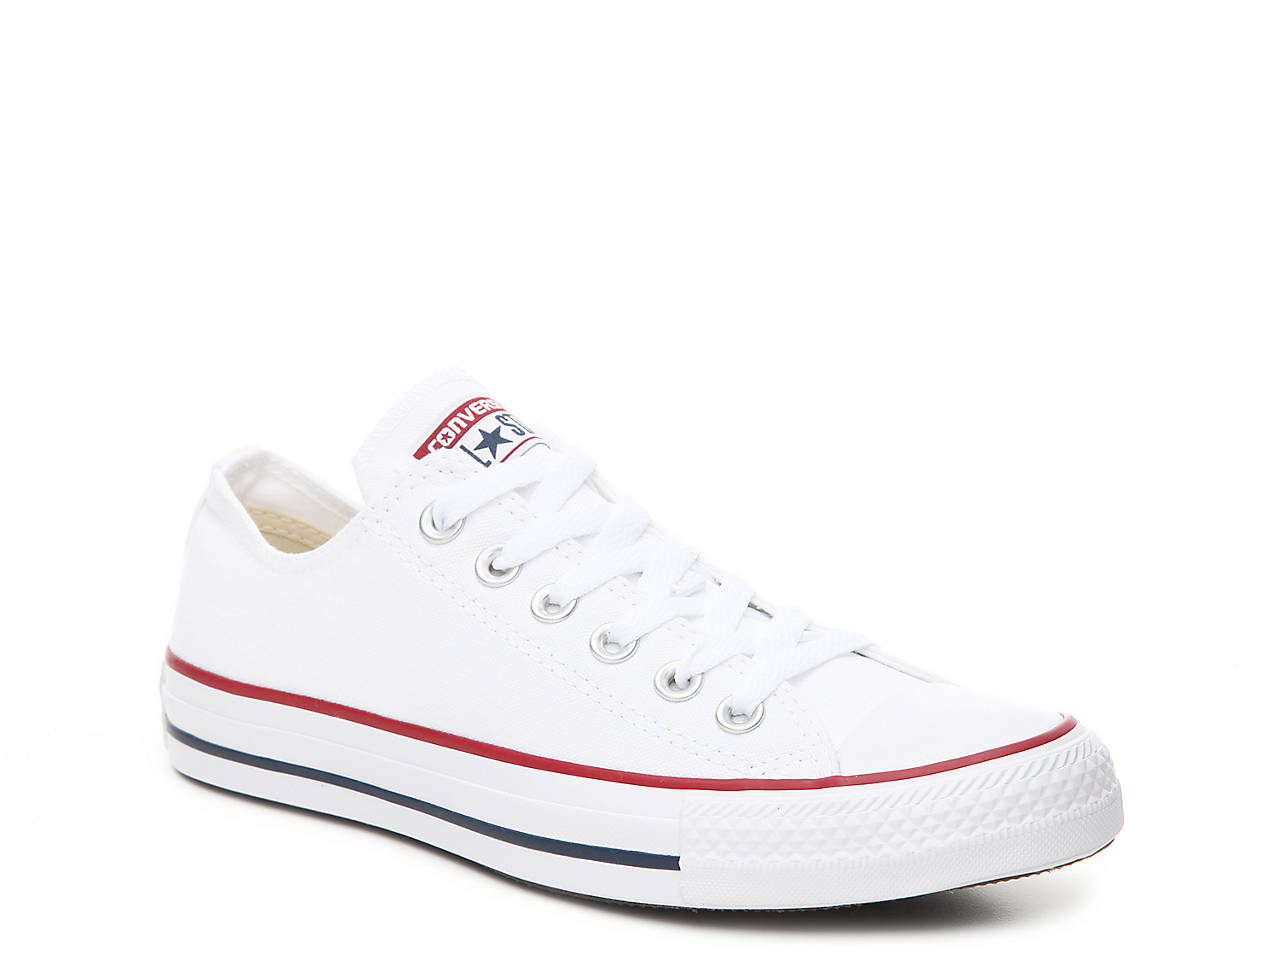 bf53308c58de Converse Chuck Taylor All Star Sneaker - Women s Women s Shoes